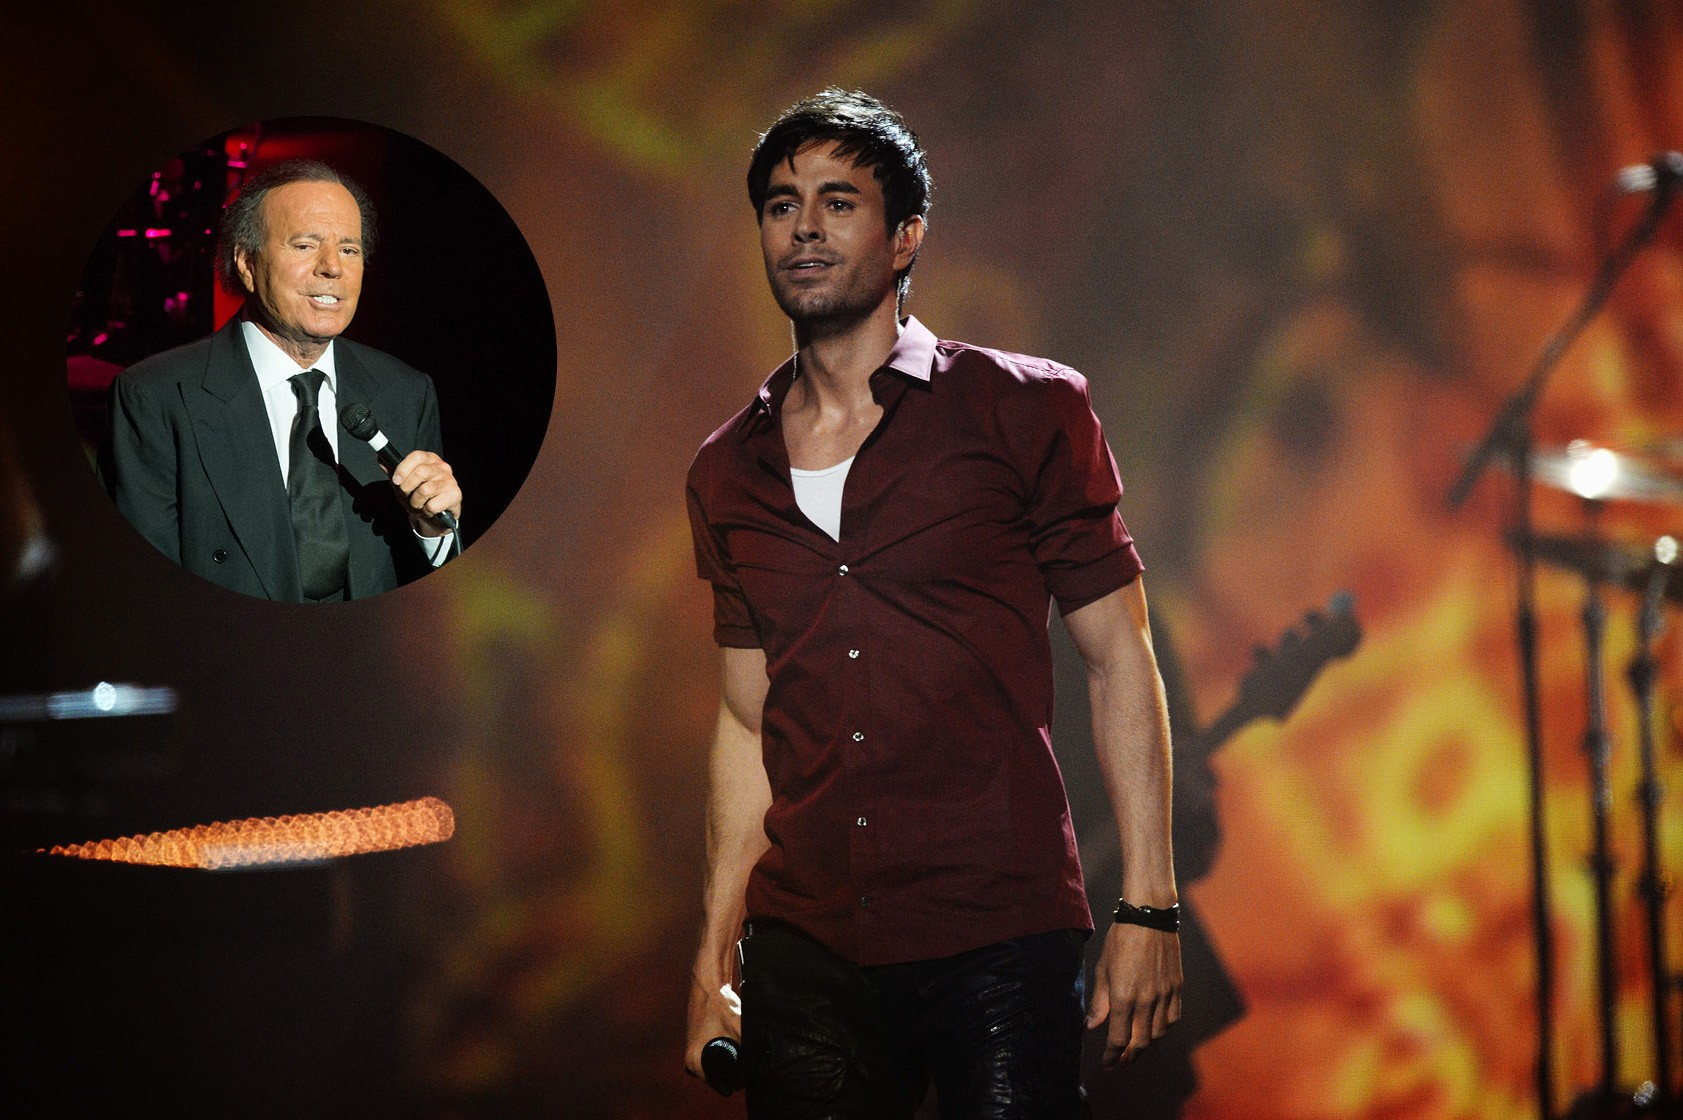 Enrique Iglesias e Julio Iglesias (Foto: Getty Images)